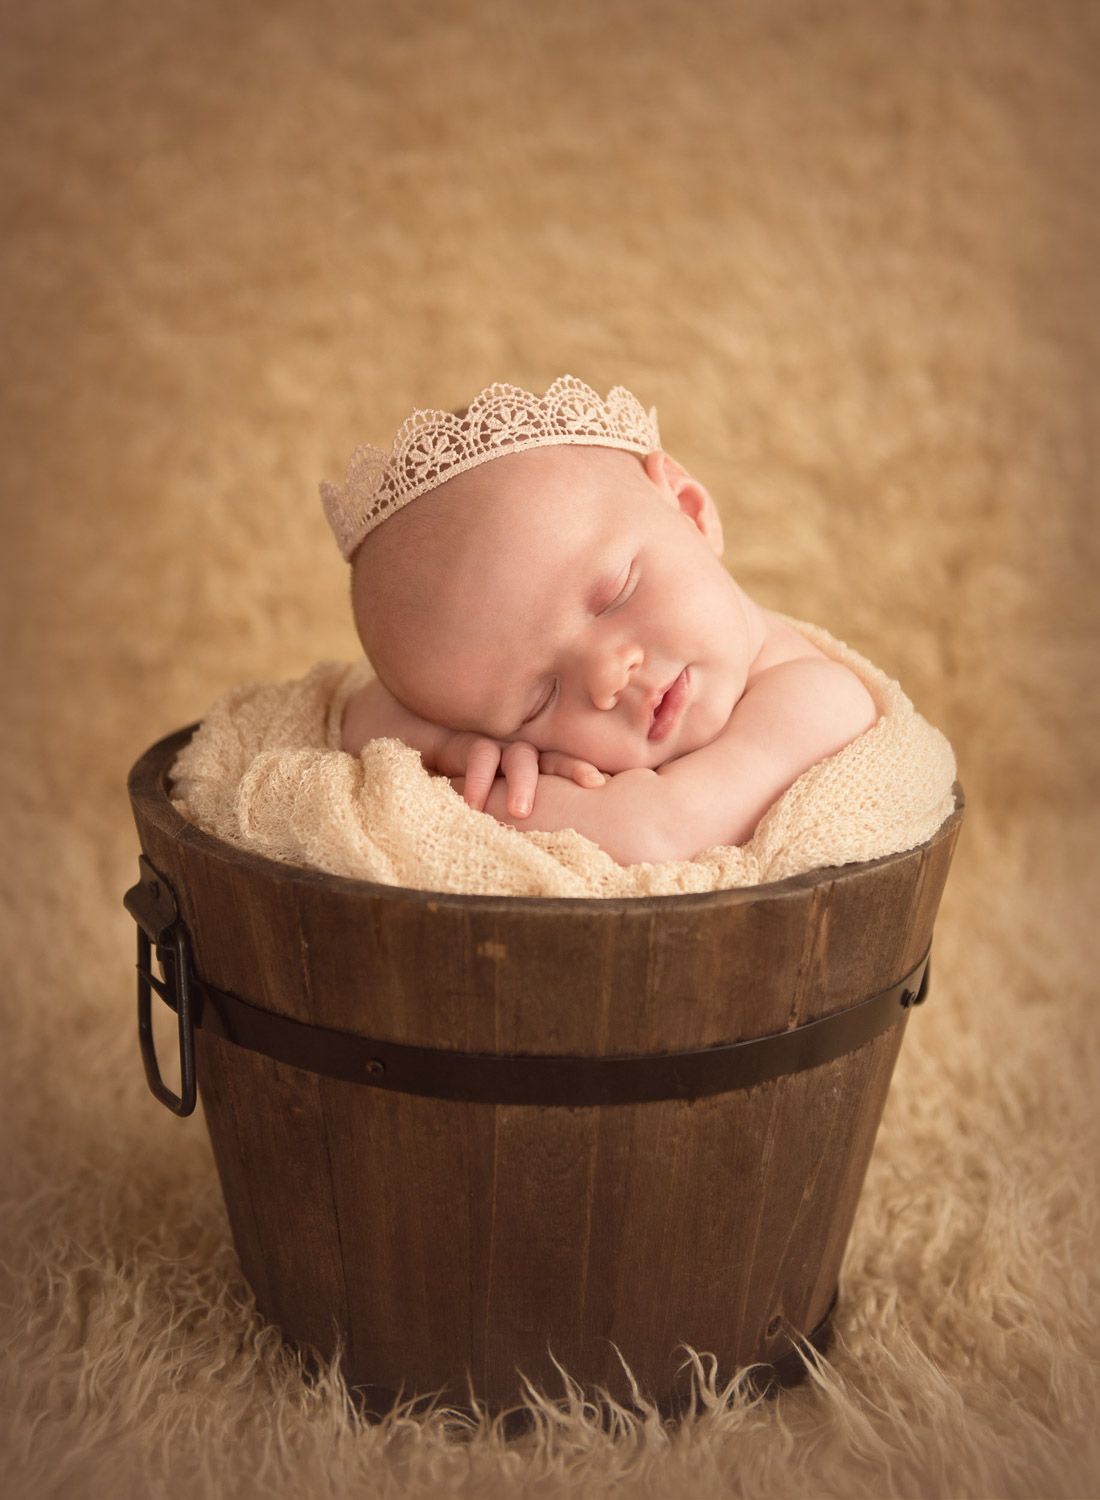 baby in bucket photo by siobhan kelly photography